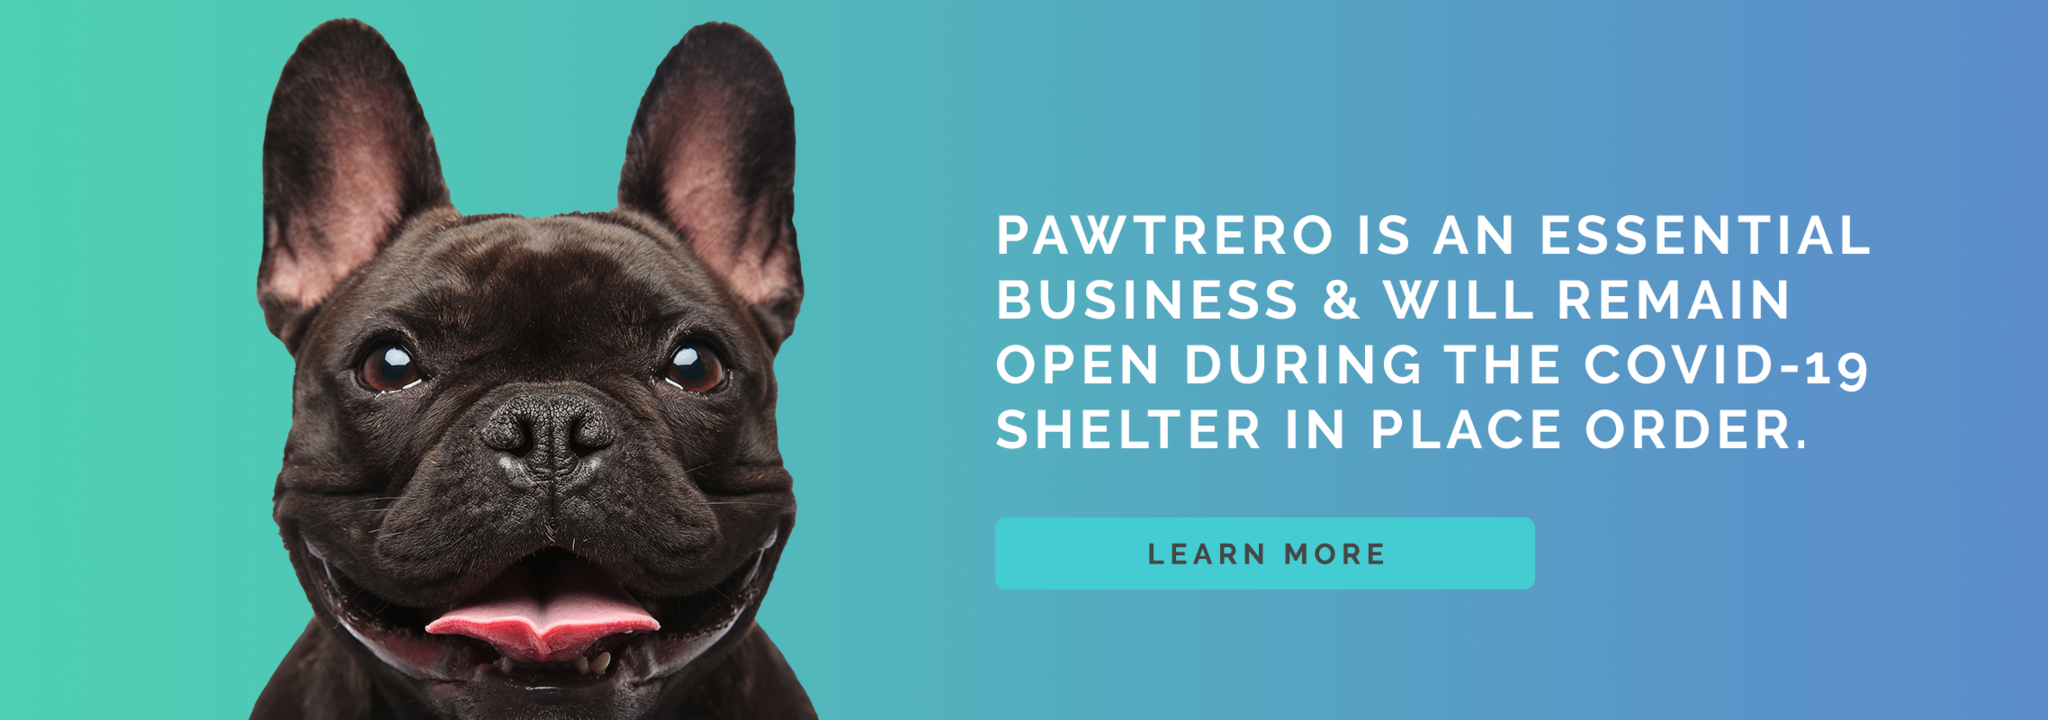 Pawtrero Statement on Covid-19